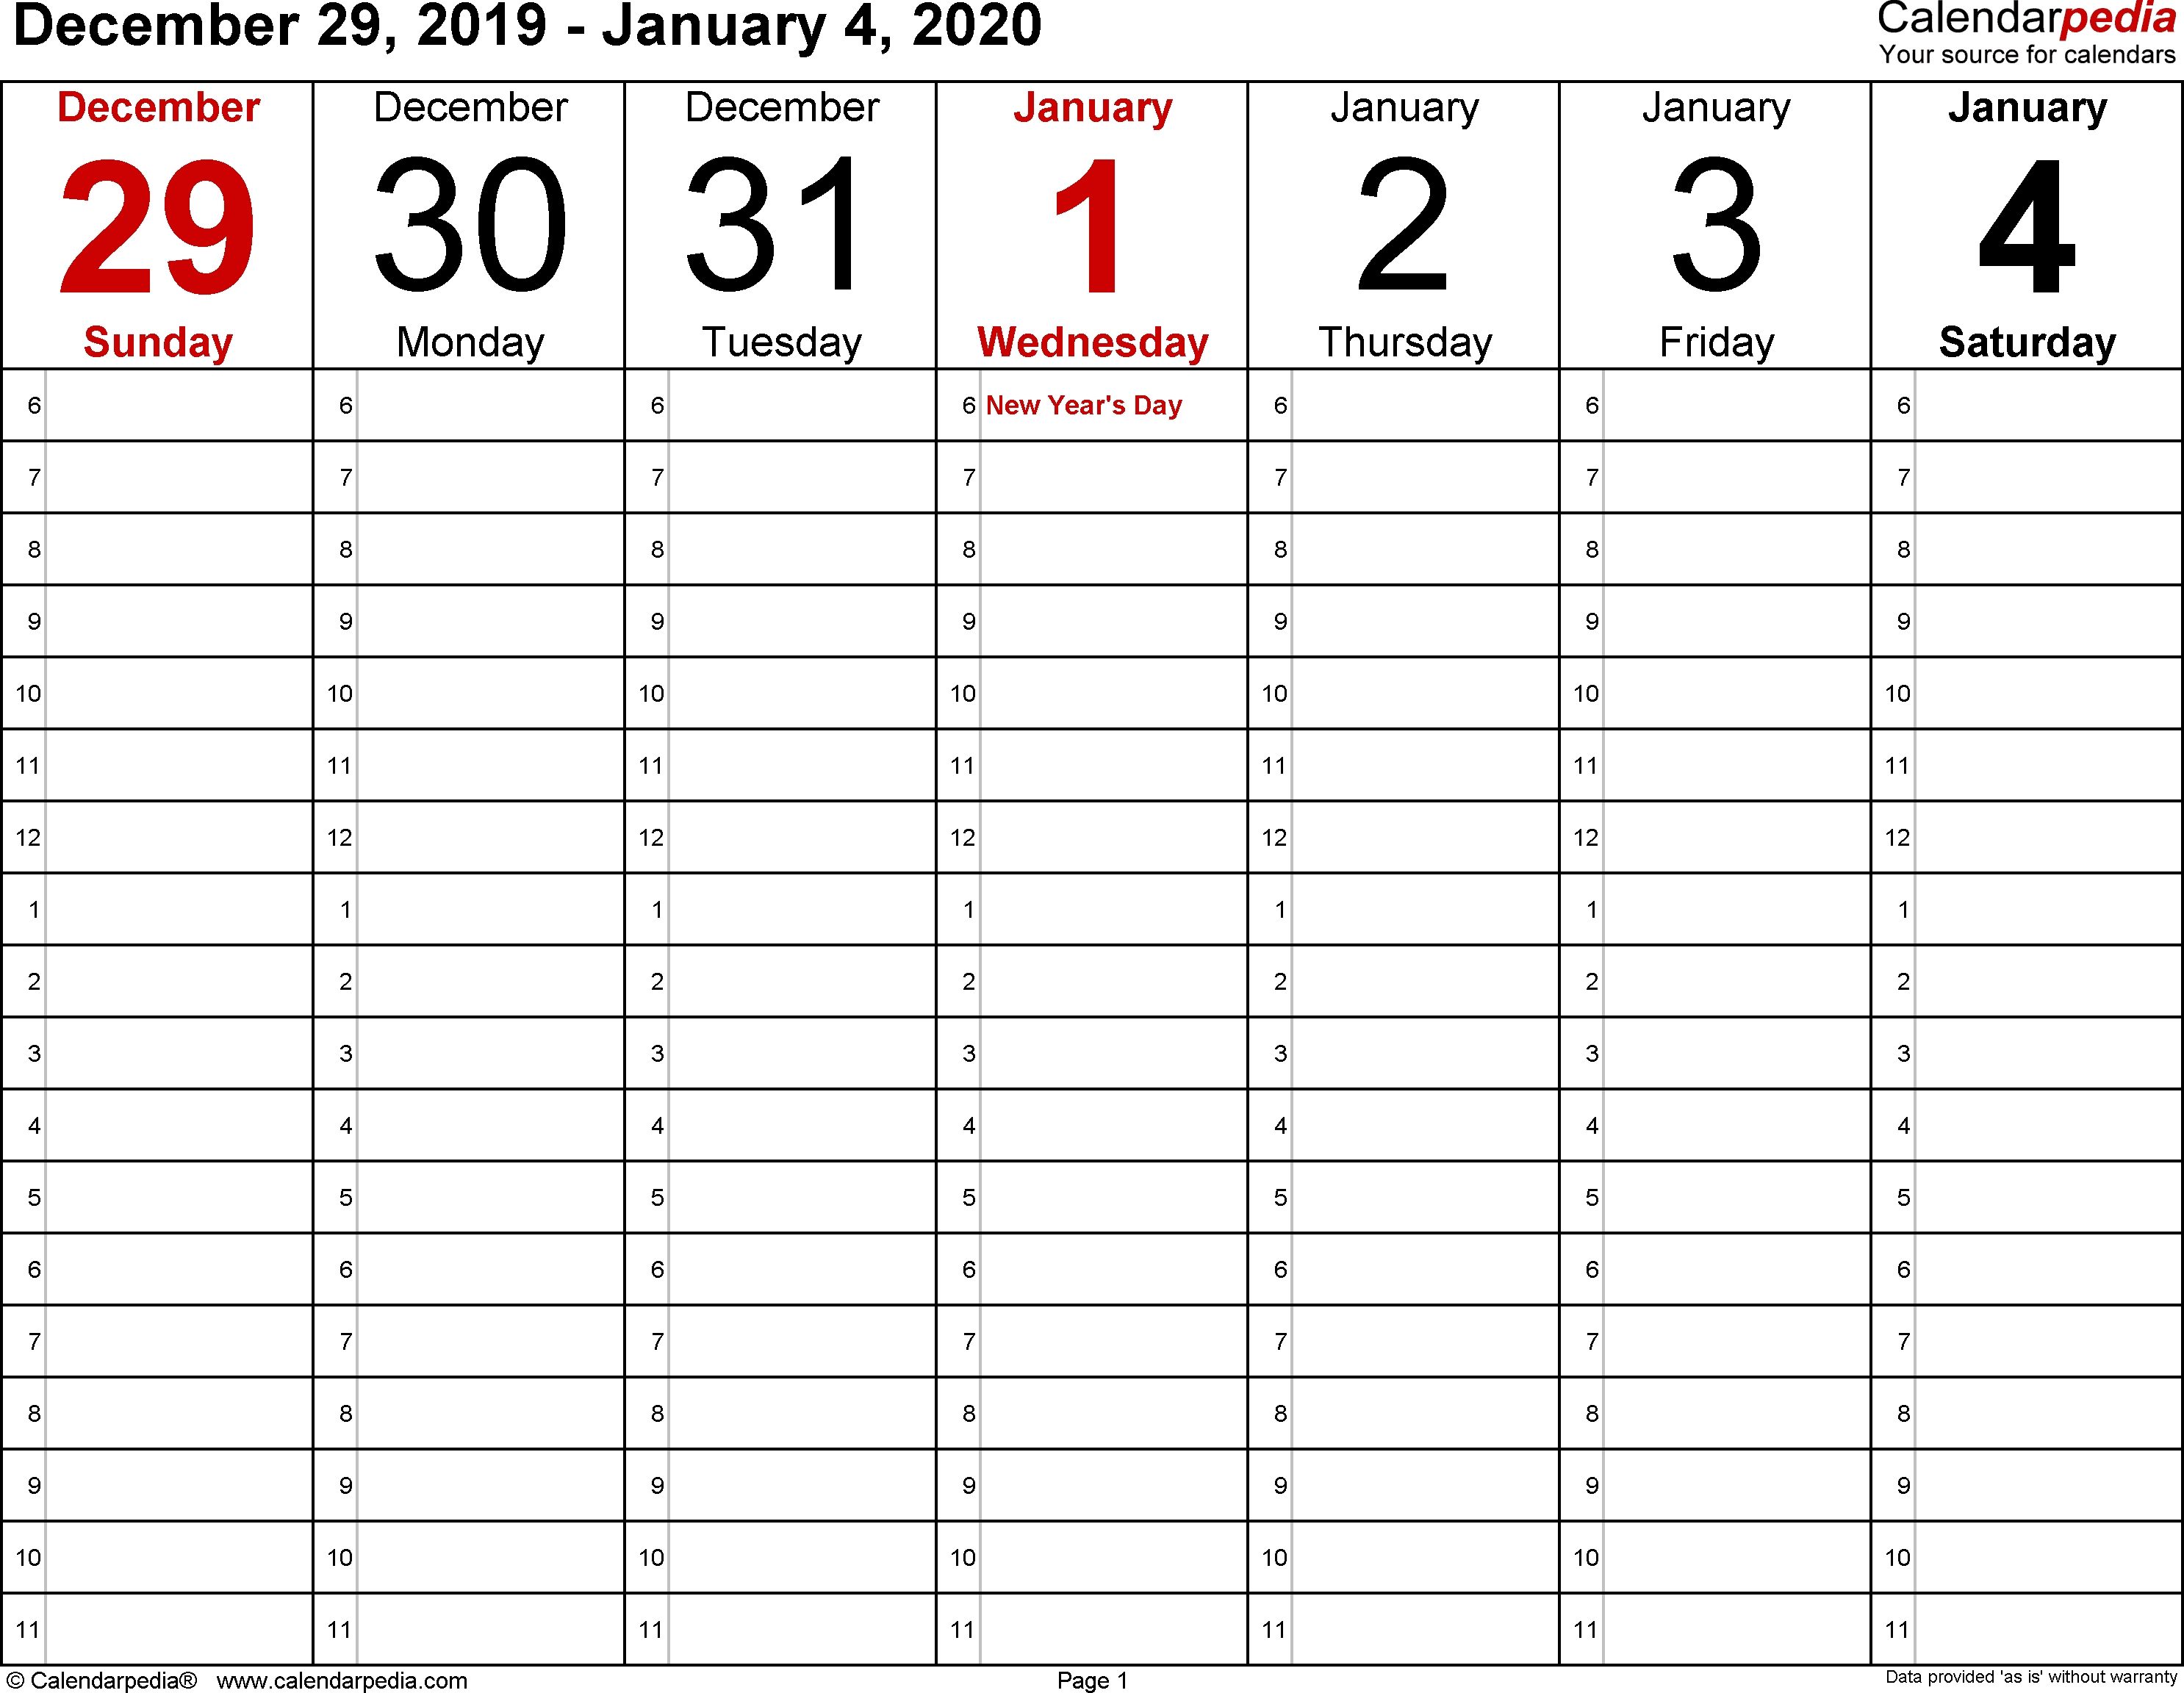 Weekly Calendars 2020 For Excel - 12 Free Printable Templates-2020 Employee Attendance Template